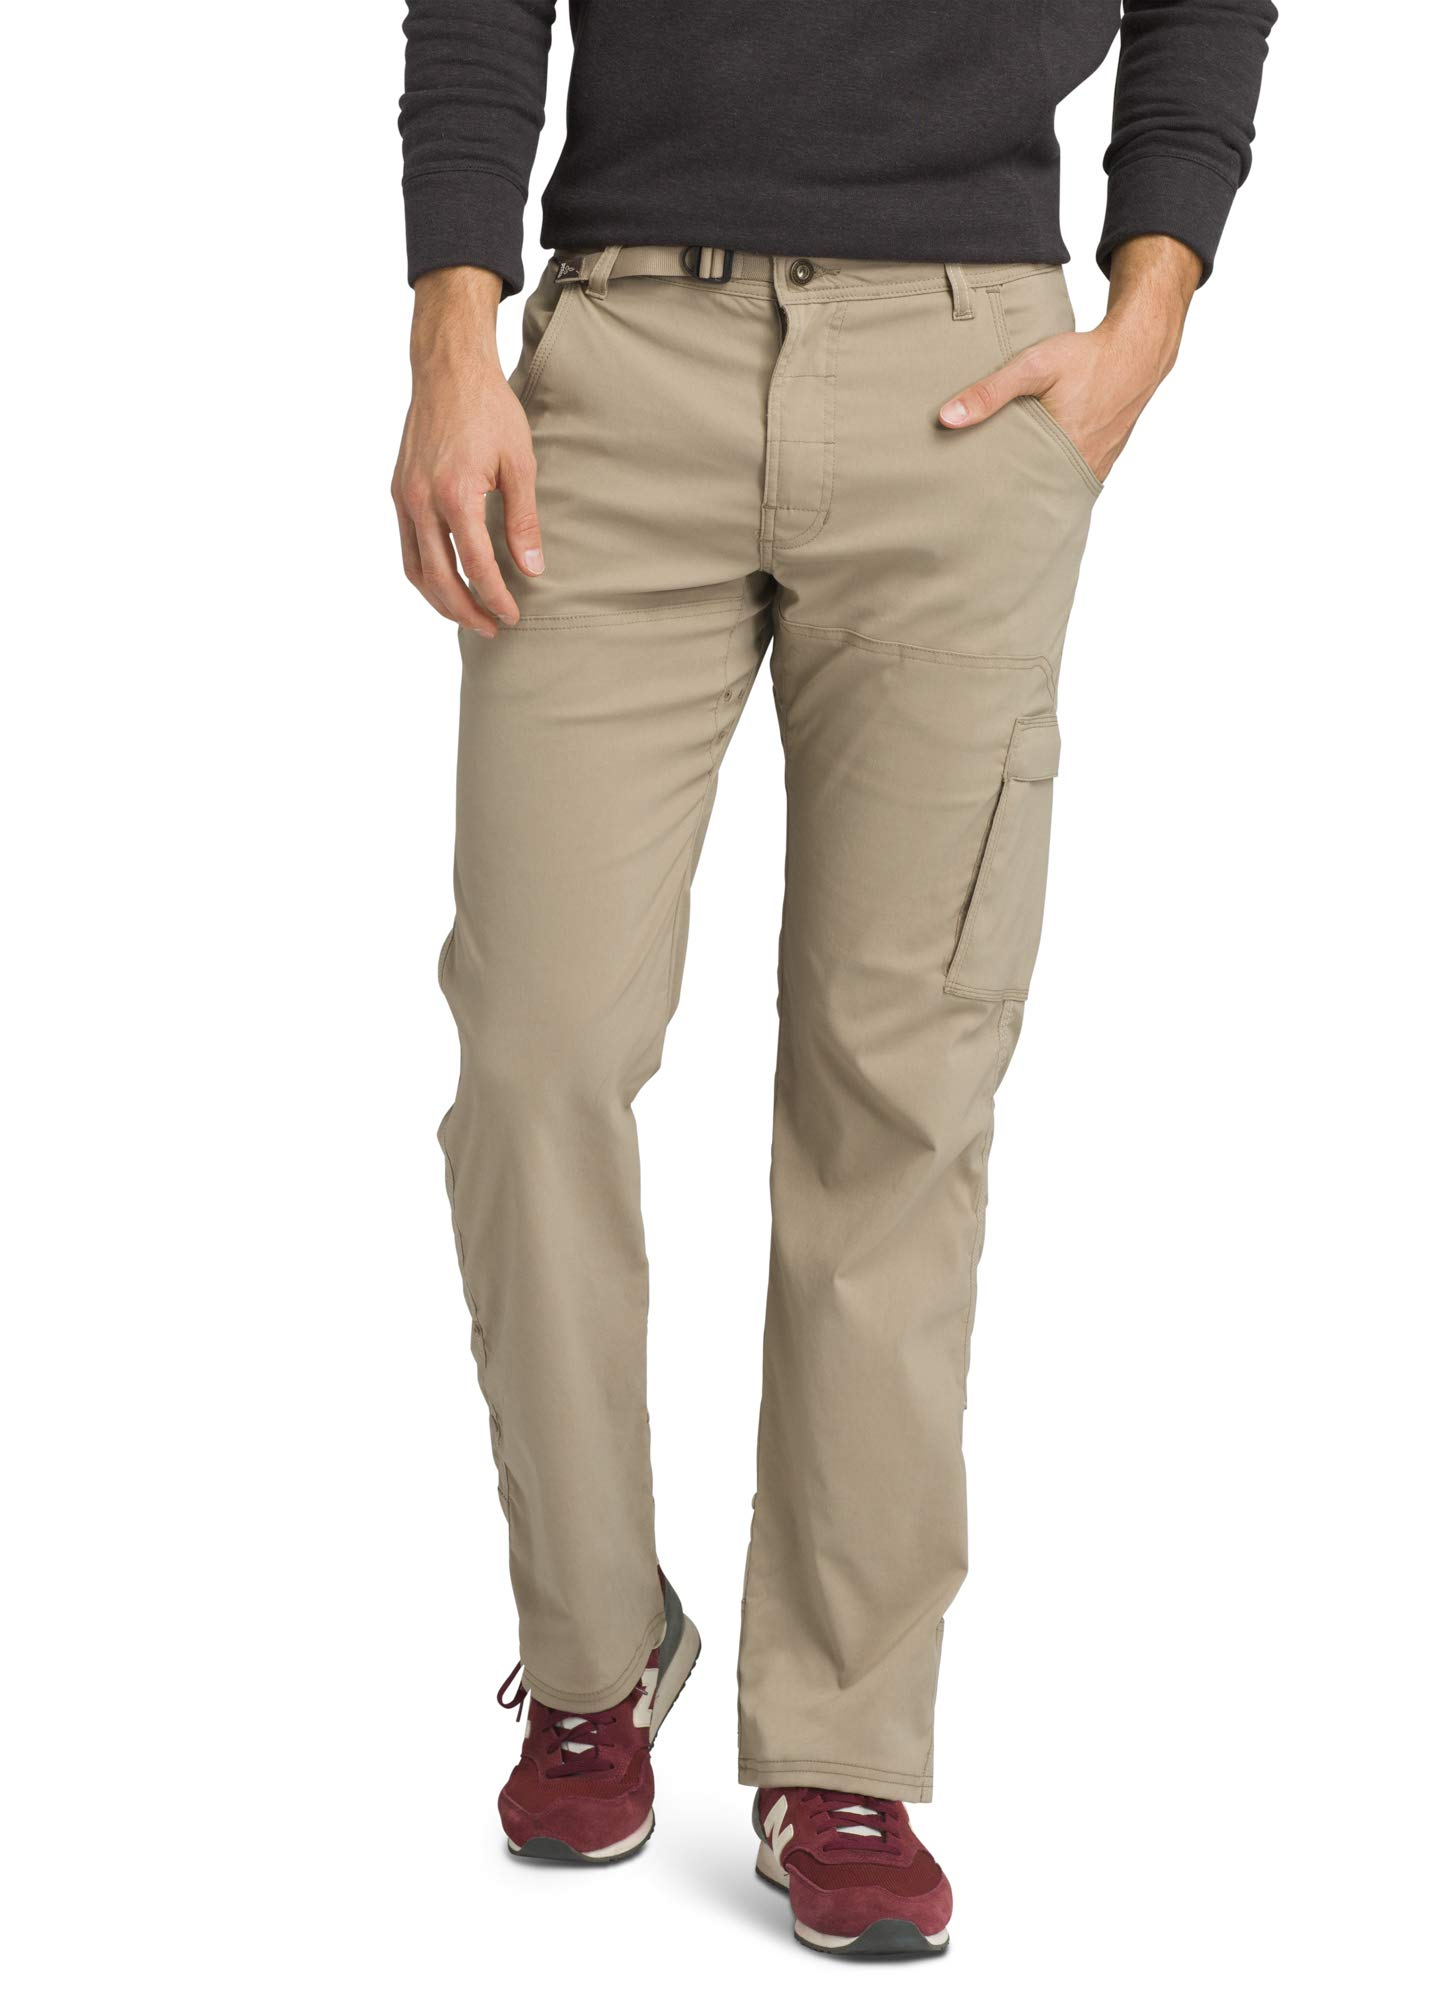 prAna - Men's Stretch Zion Lightweight, Durable, Water Repellent Pants for Hiking and Everyday Wear, 36'' Inseam, Dark Khaki, 33 by prAna